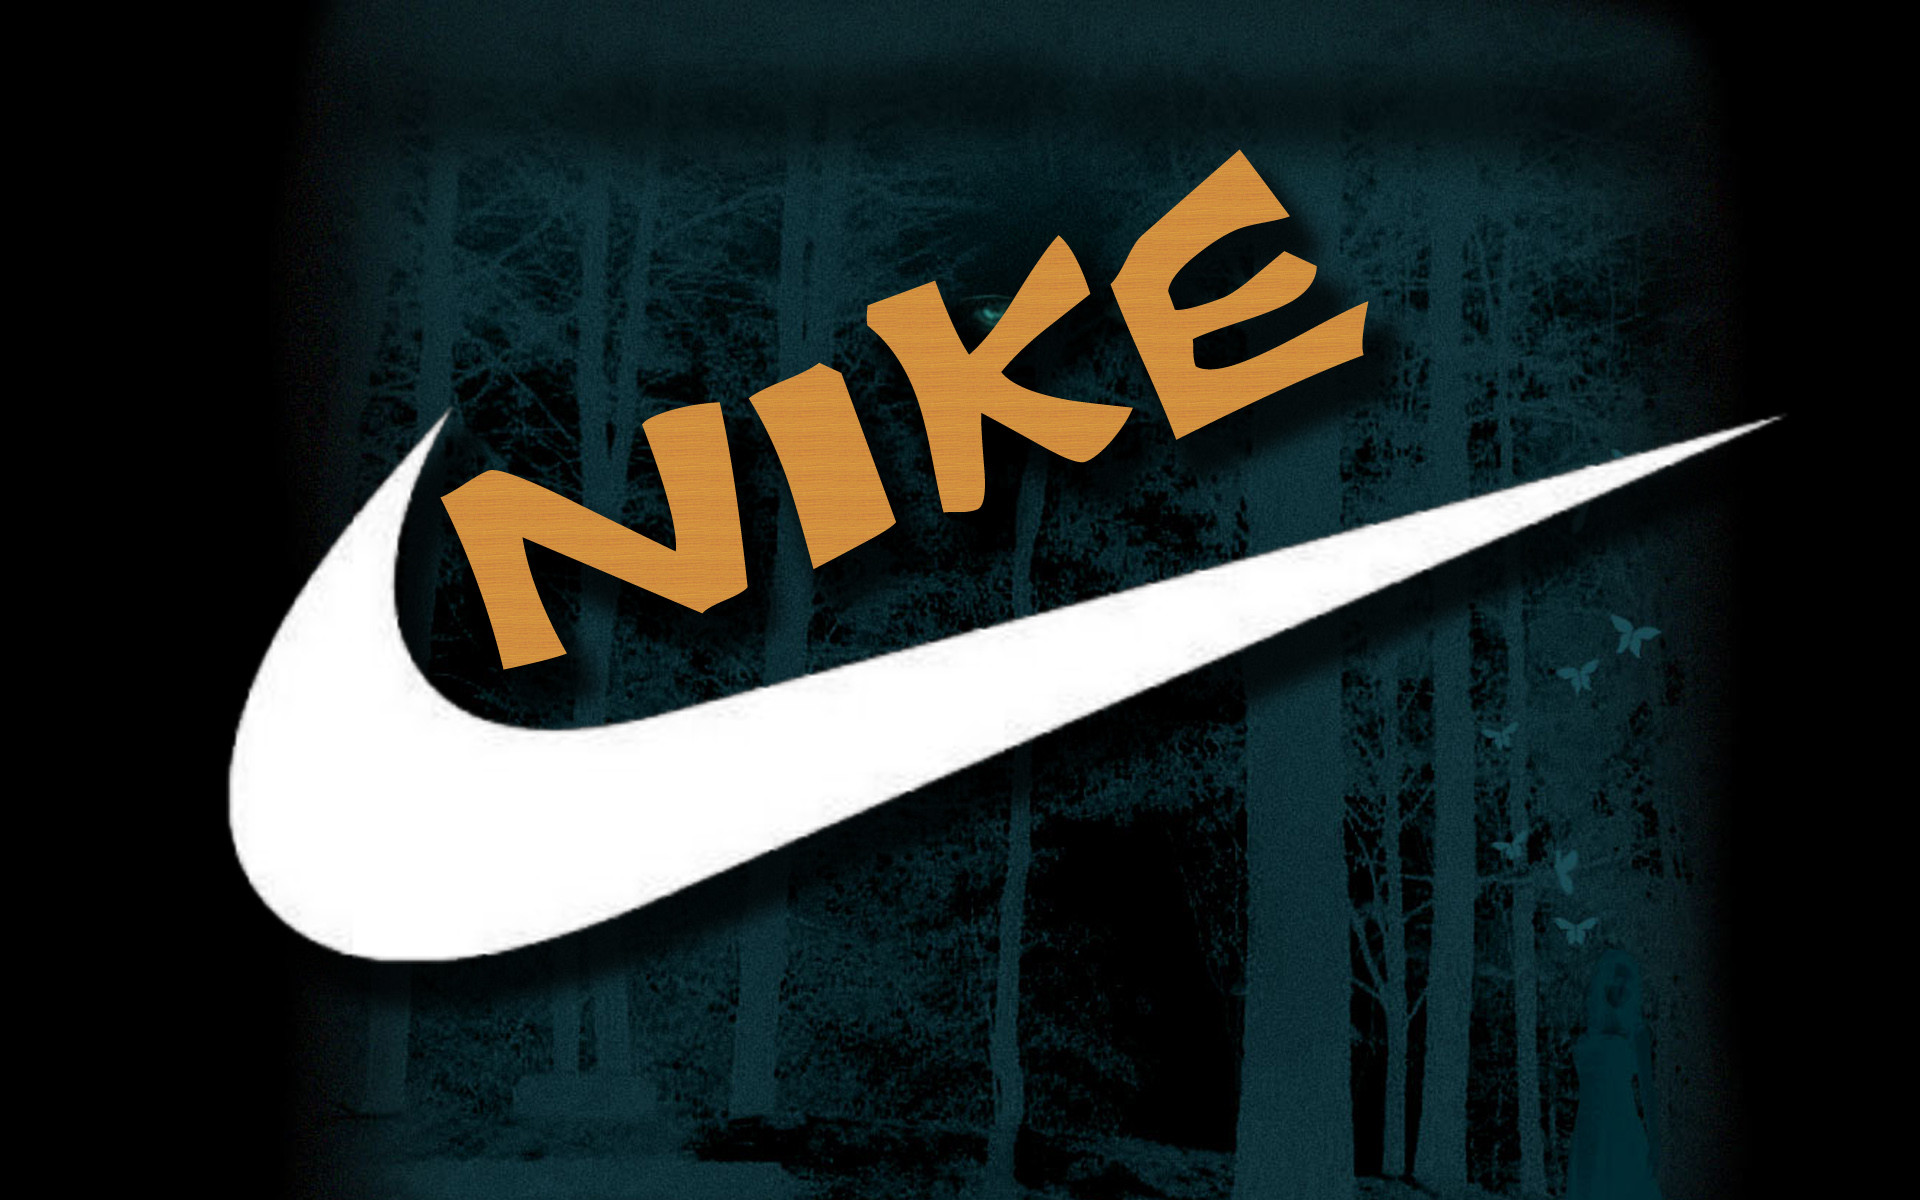 Nike Wallpapers Hd 2018 60 Pictures